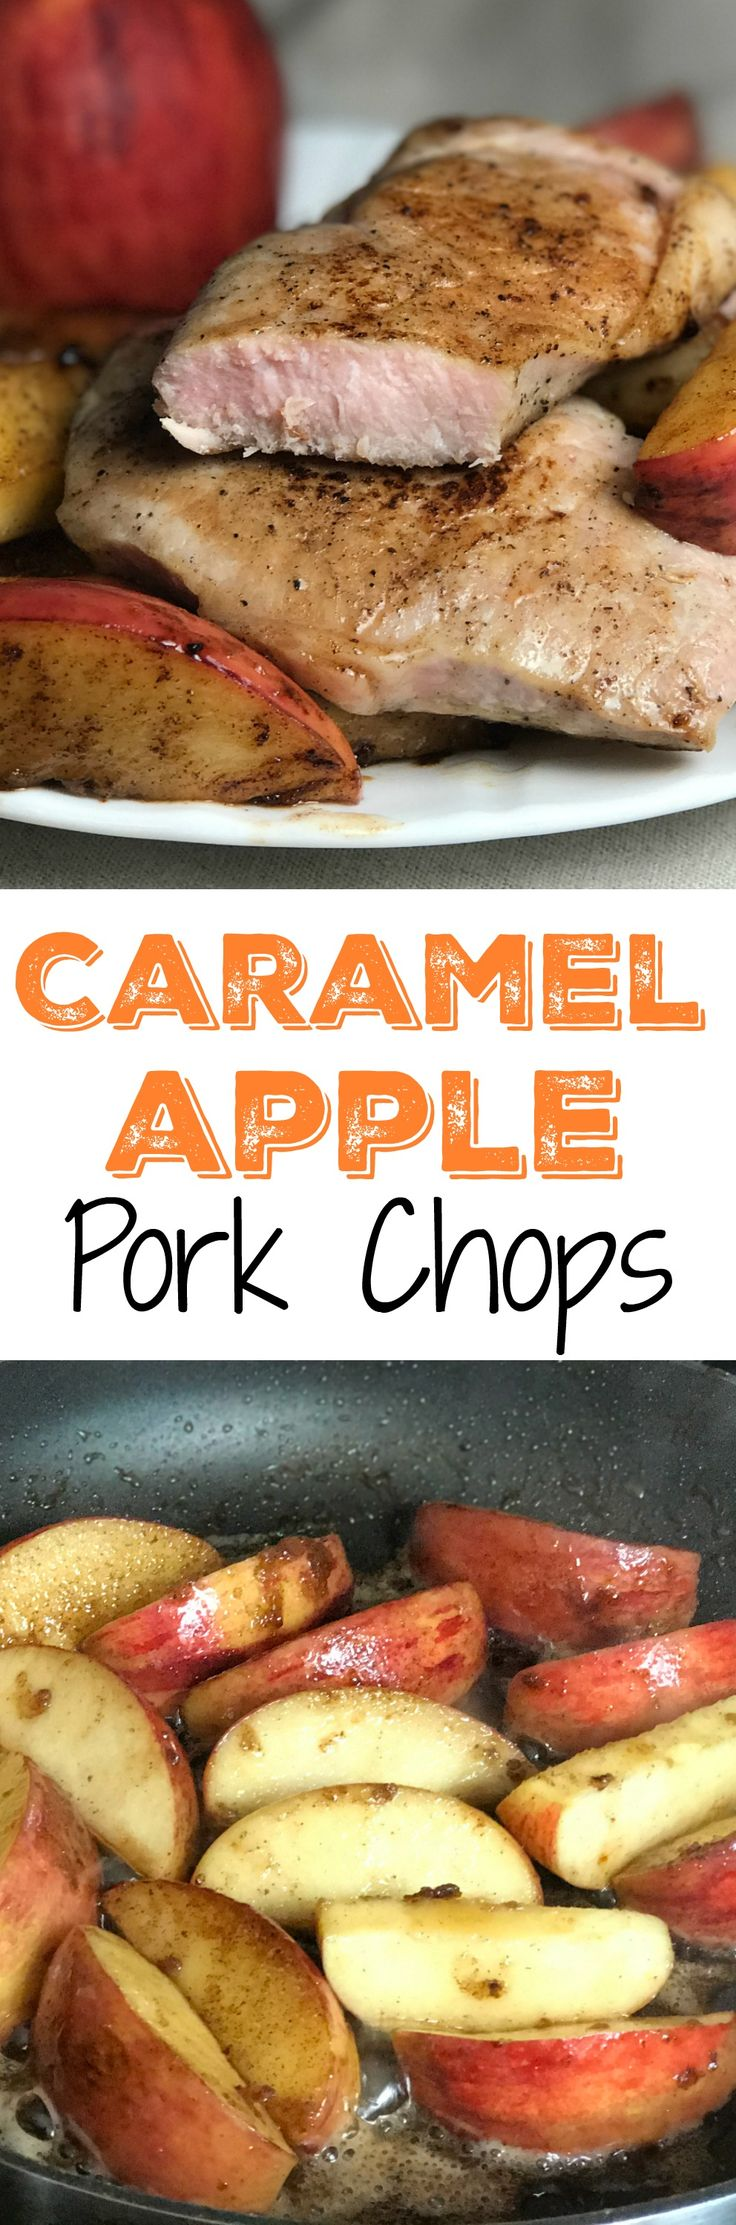 This easy pork chop and apple recipe has the perfect flavor combination.  The chops only take 10 minutes to cook and you have a great meal to enjoy.